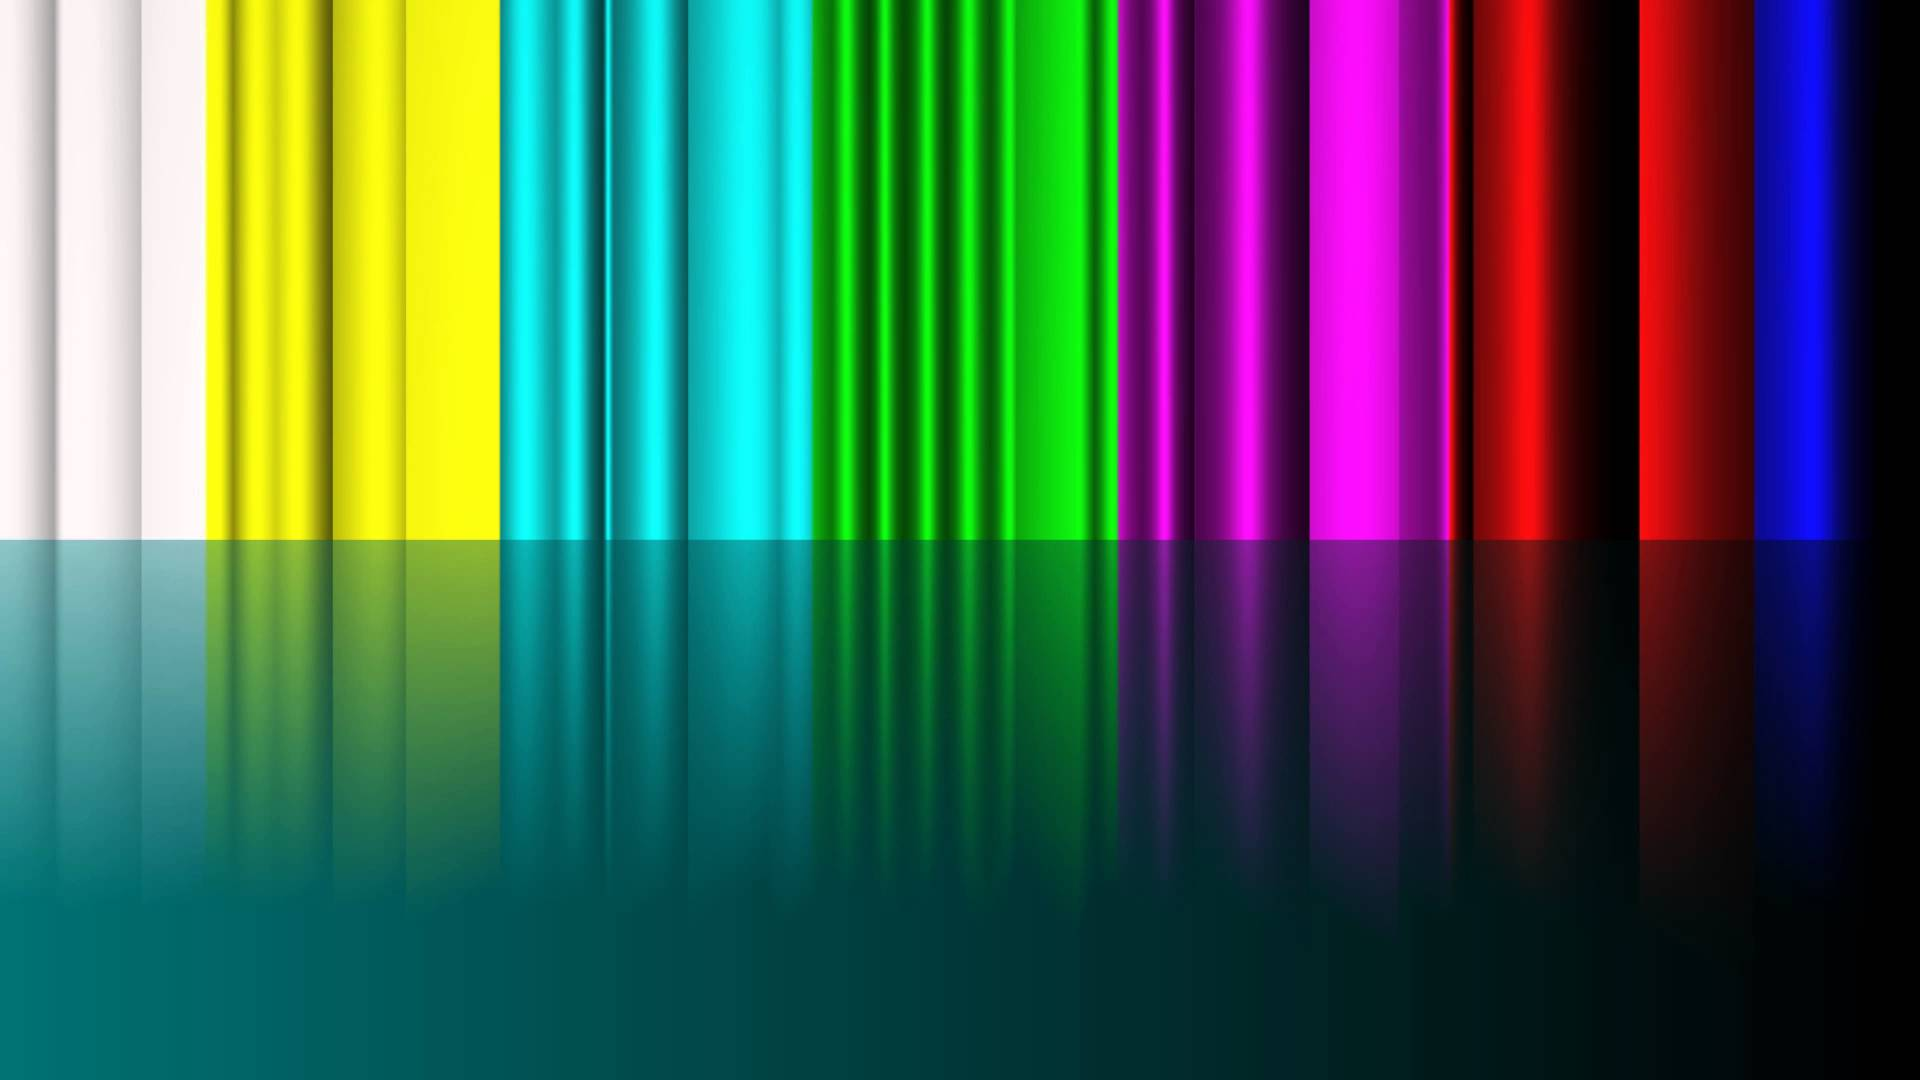 Funny Love Quotes Wallpaper Free Download Download Tv Color Bars Wallpaper Gallery